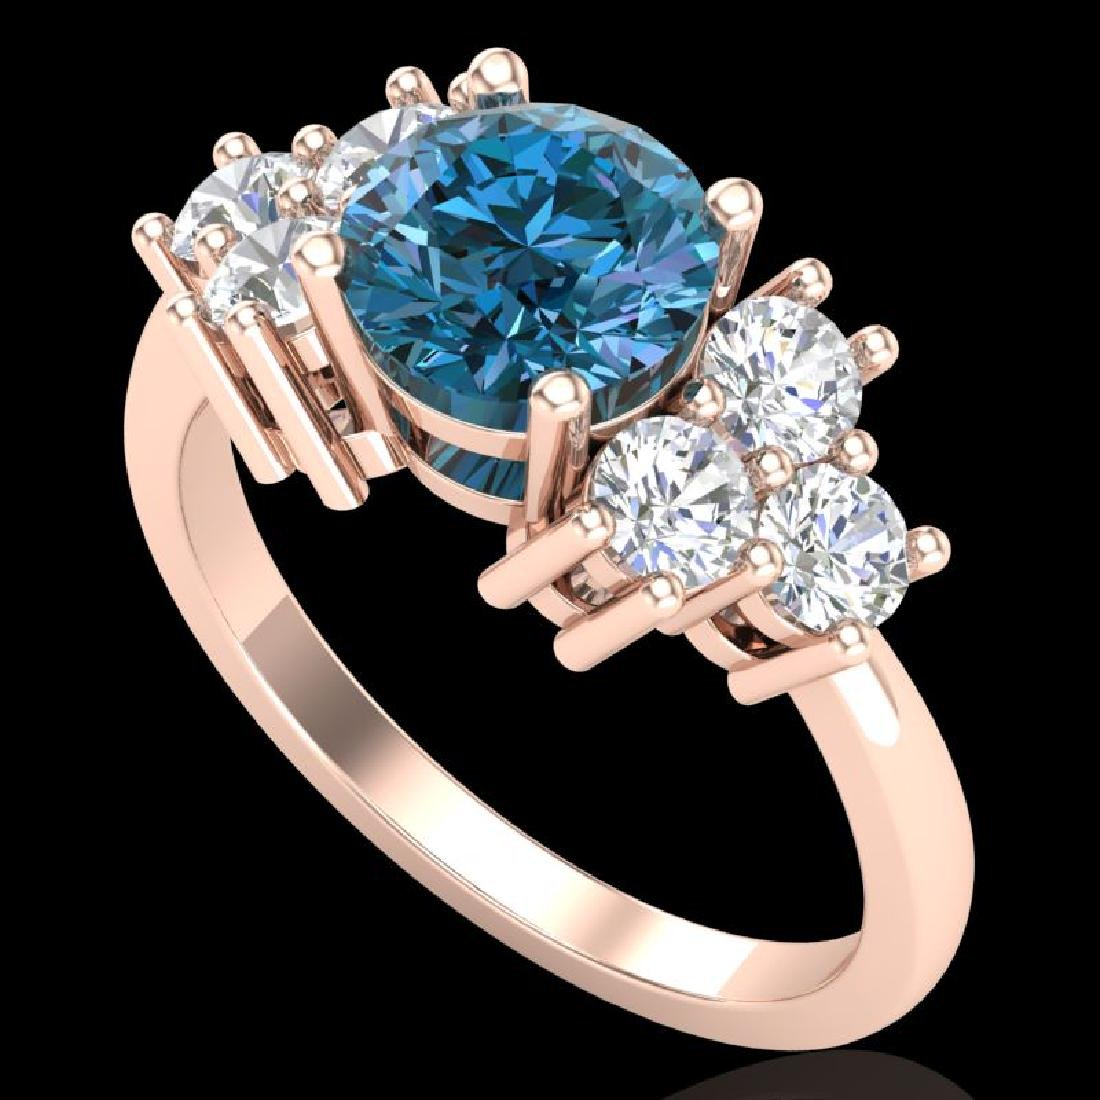 2.1 CTW Intense Blue Diamond Solitaire Engagement